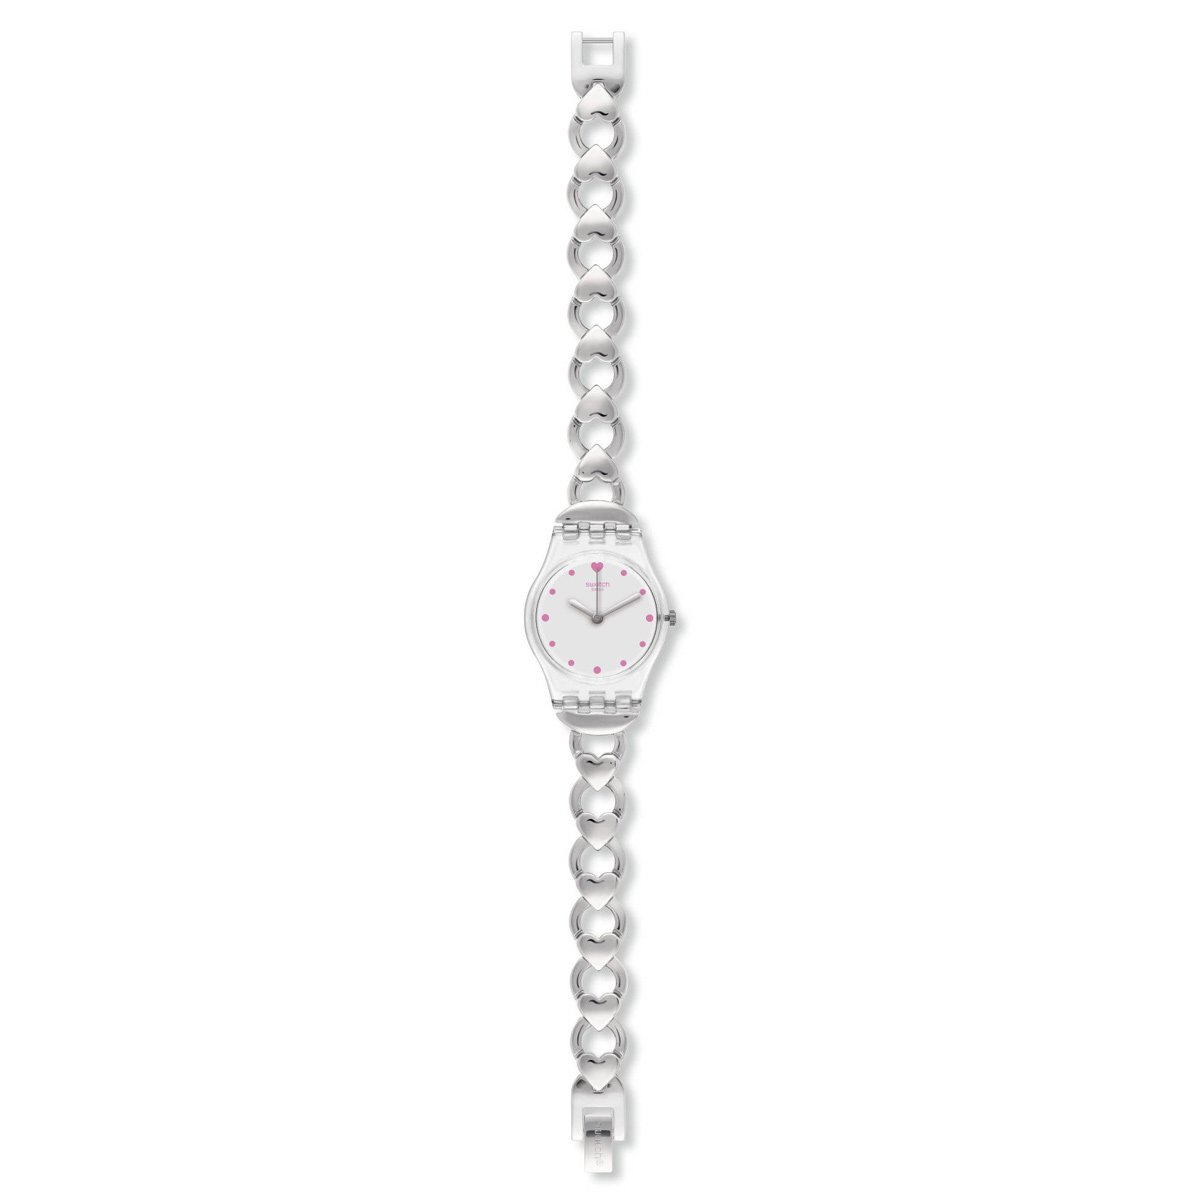 Amazon.com: Swatch LK362G Womens Gamme De Coeur Silver Dial Stainless Steel Charm Bracelet Watch: Watches